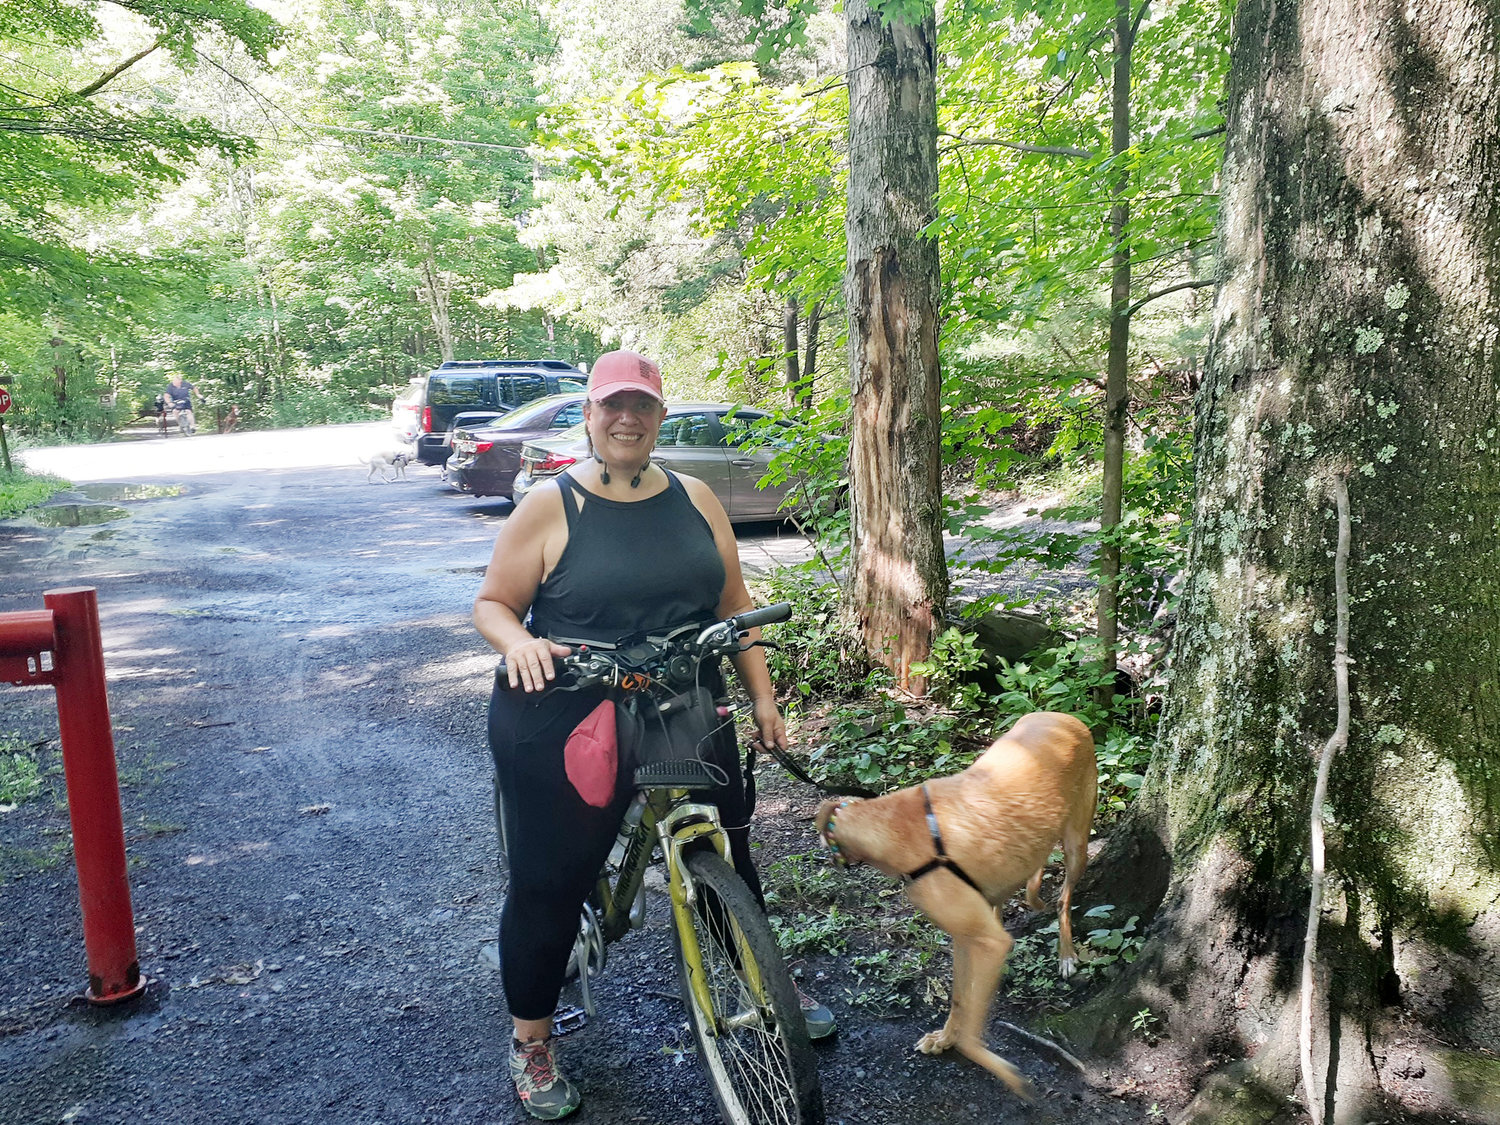 Lisa McGovern and Rocket at the Marcotte Road trailhead. Special posted rules include, stay 6' away, keep to the right, do not block trail, pass on the left and try not to touch surfaces.